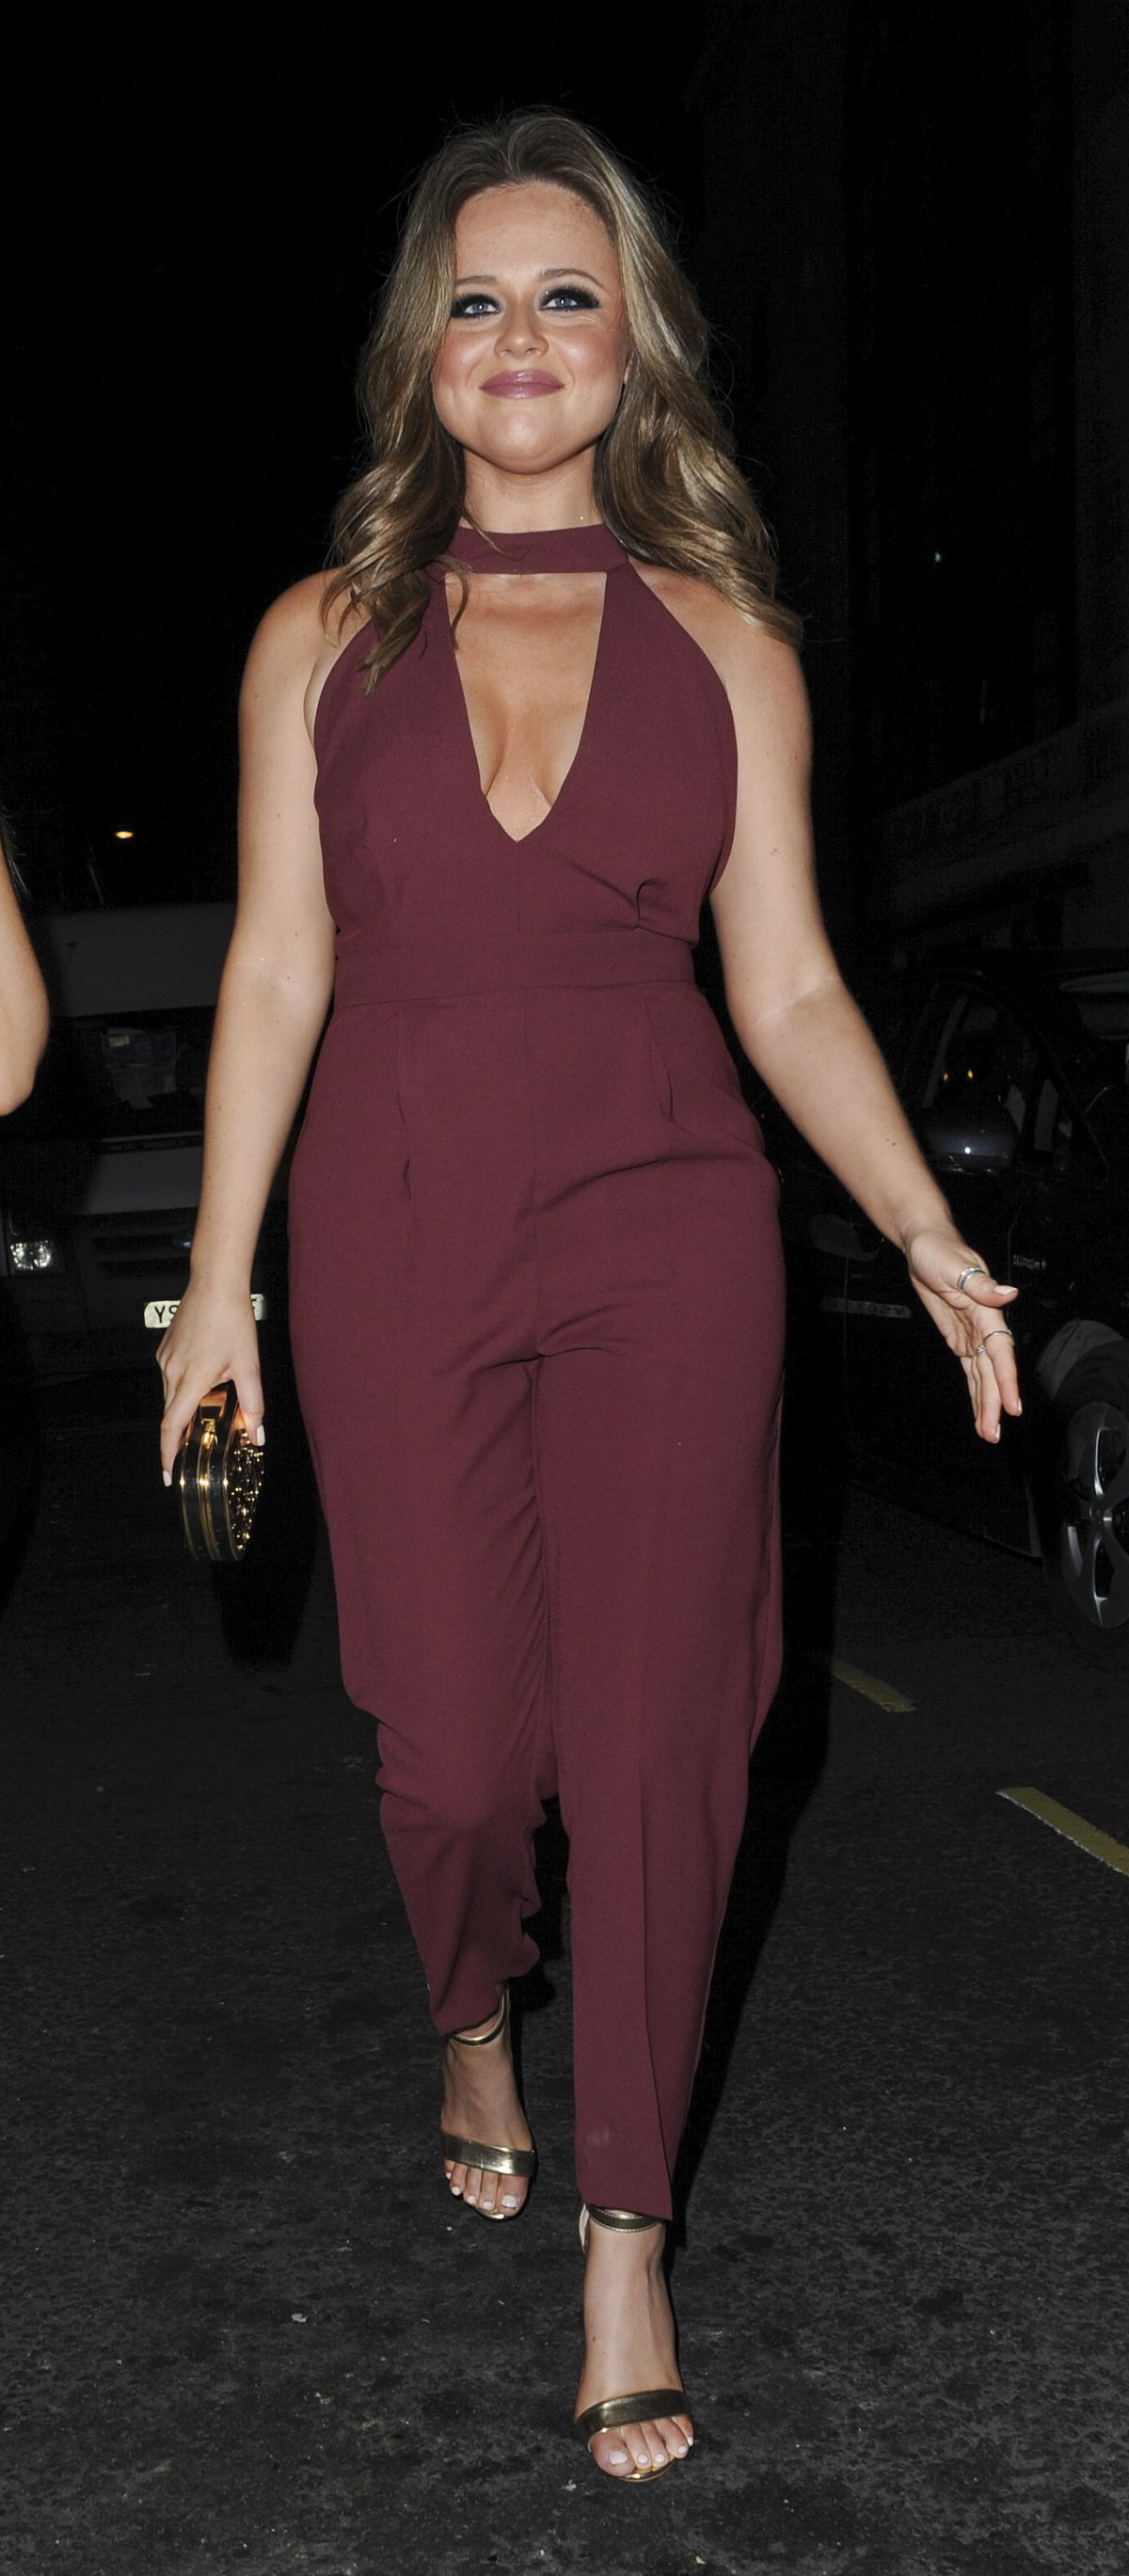 EMILY ATACK at Instyle and EE Rising Star Pre-bafta Party in London 02/04/2016